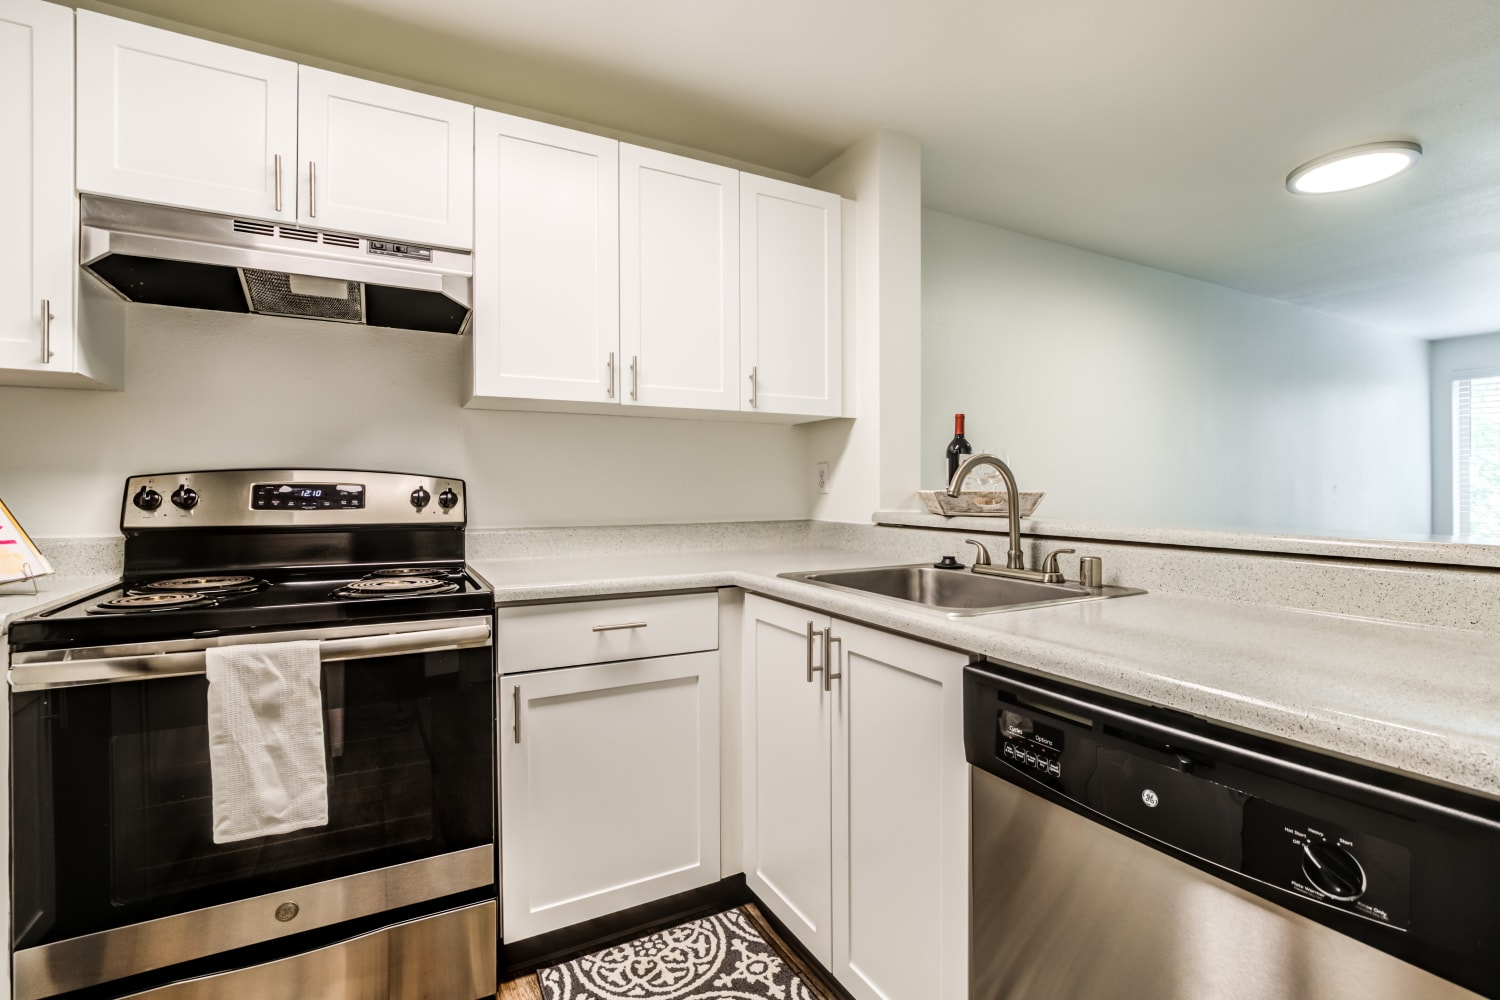 Kitchen with modern amenities at Metropolitan Park Apartments in Seattle, Washington